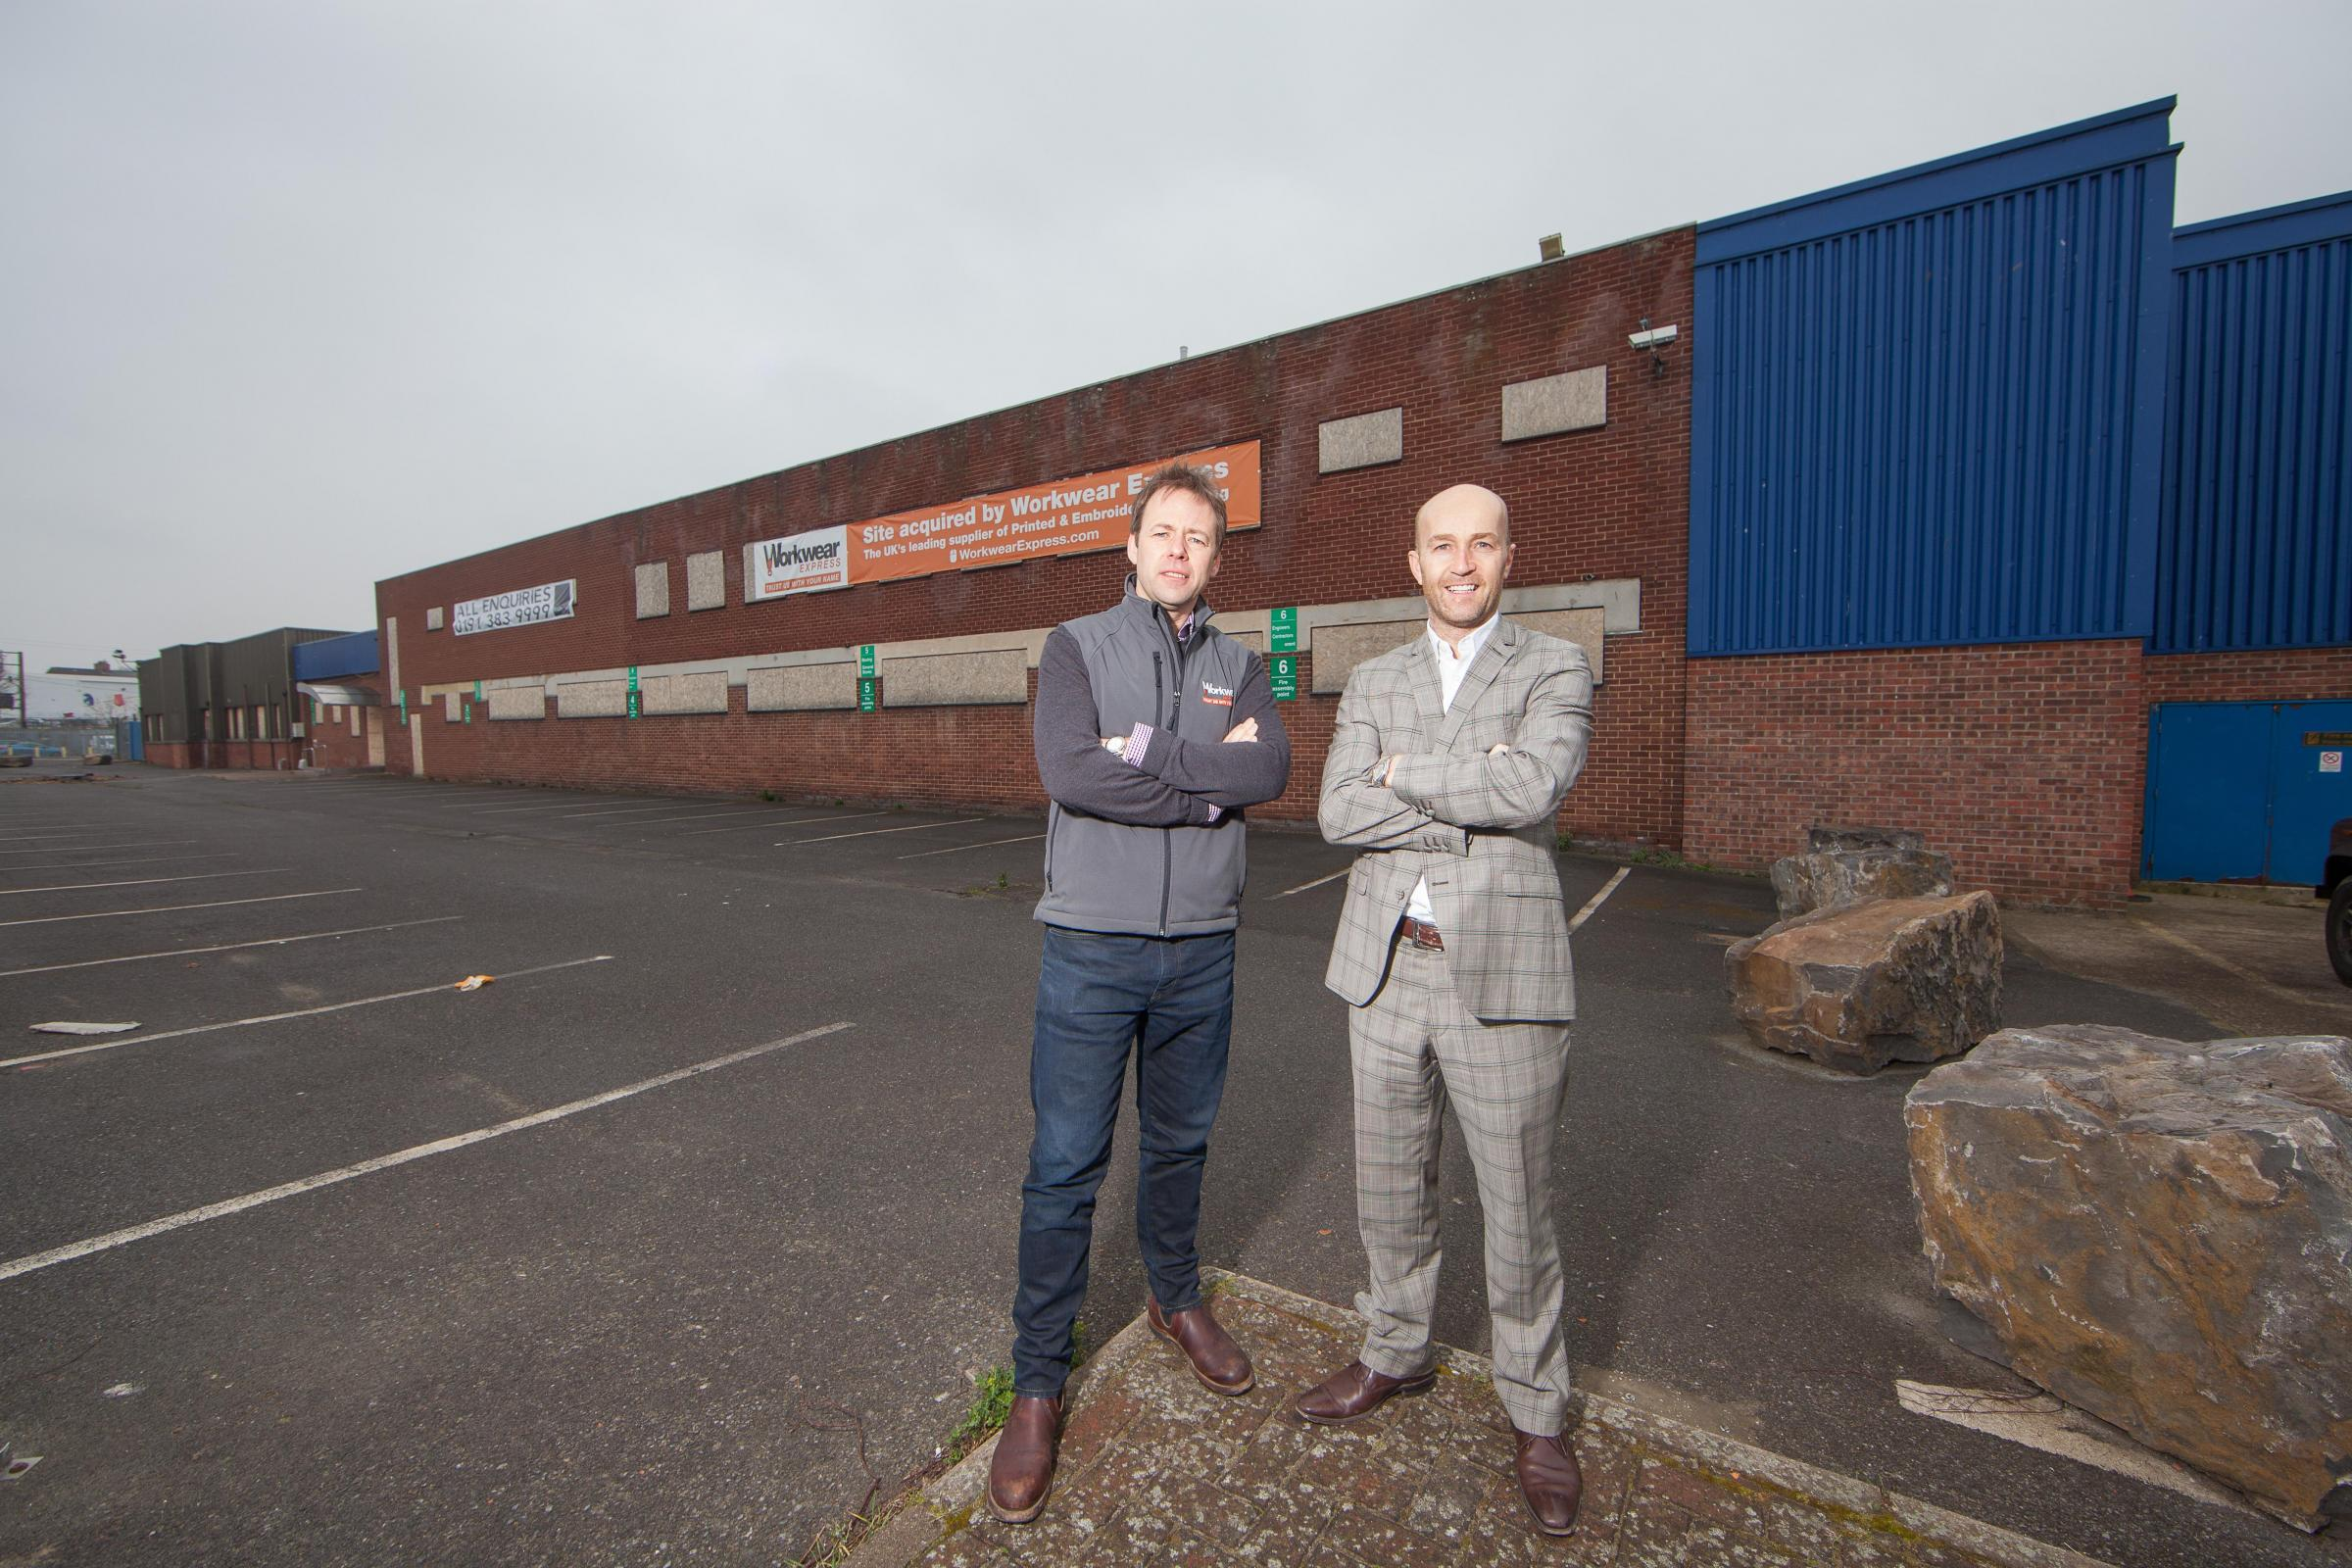 Andrew Ward, left, of Workwear Express, with Bradley Hall's Peter Bartley